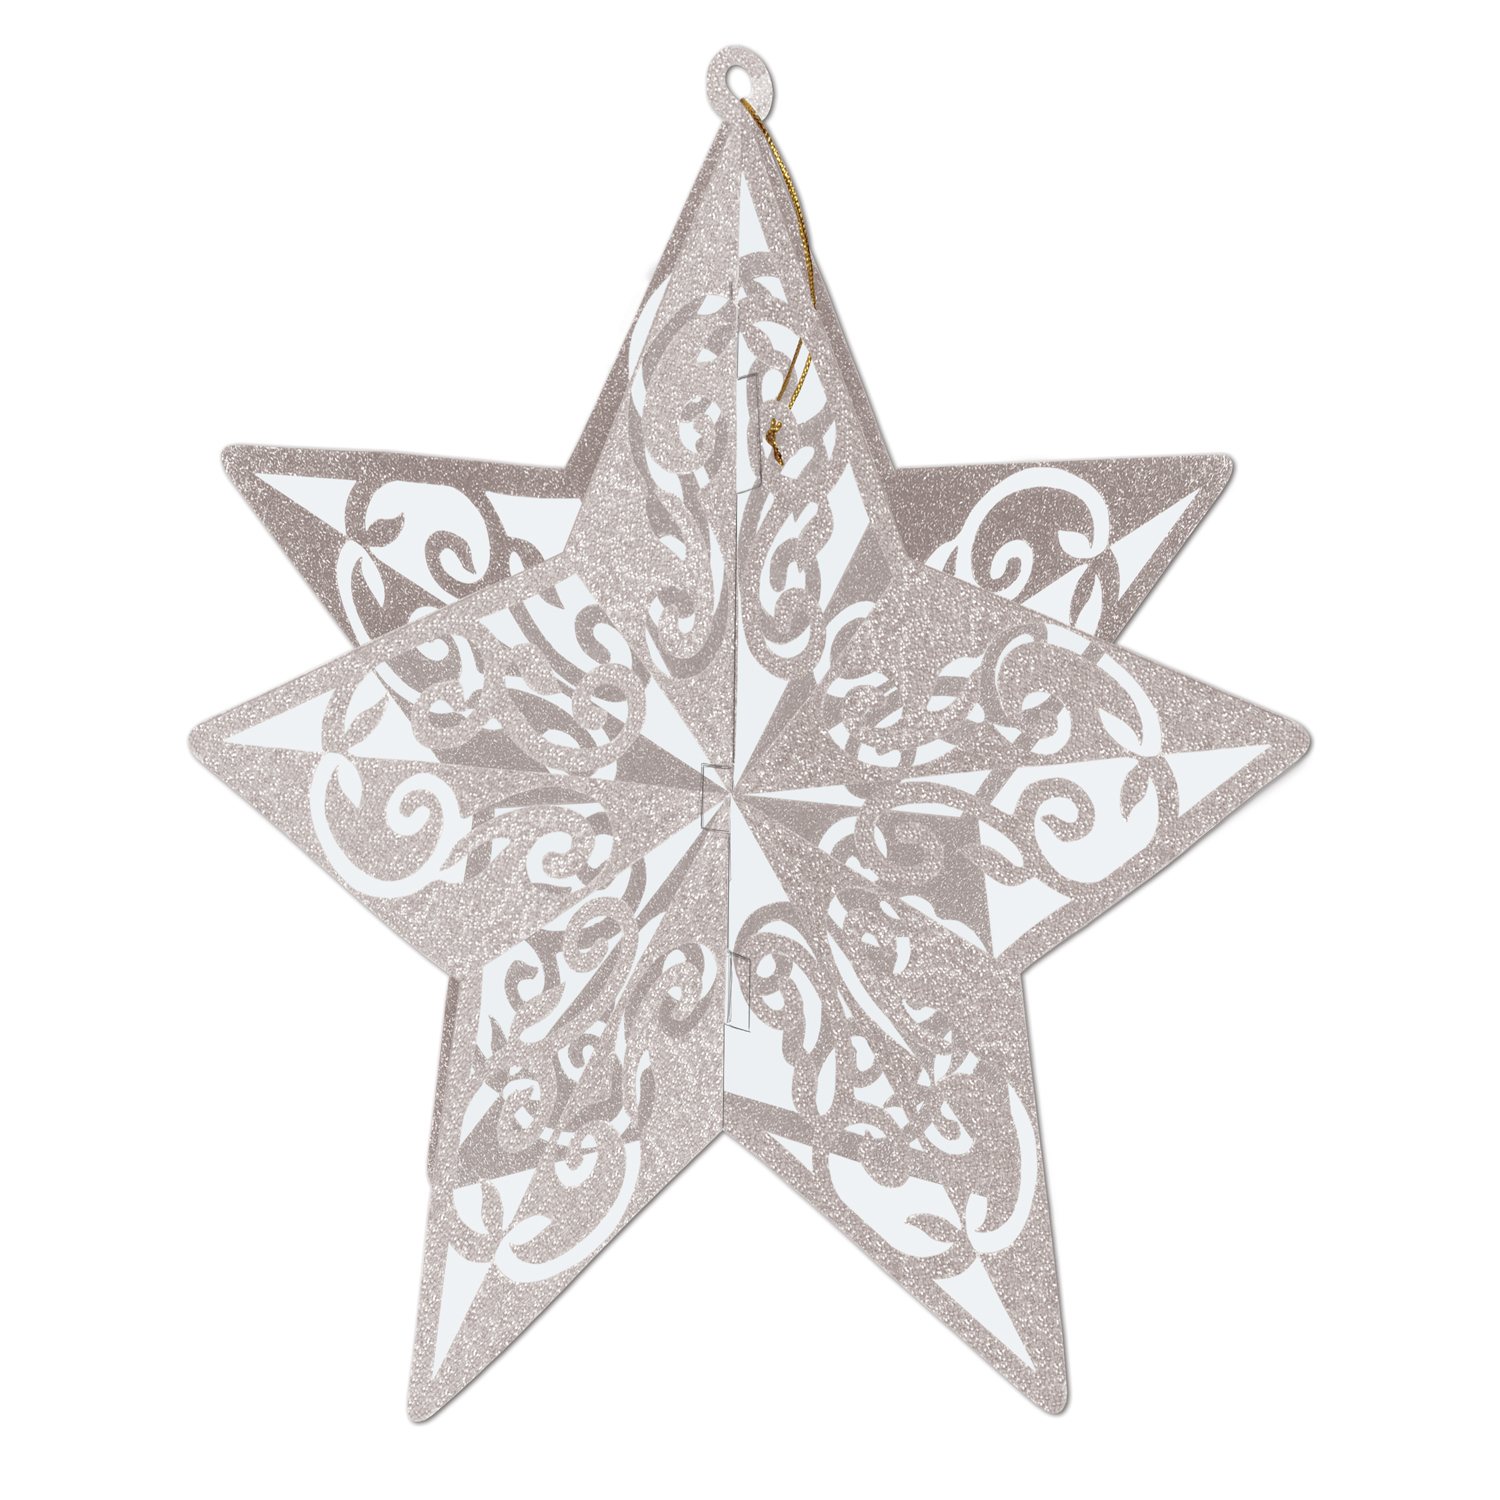 3-D Glittered Star Centerpiece 12in silver